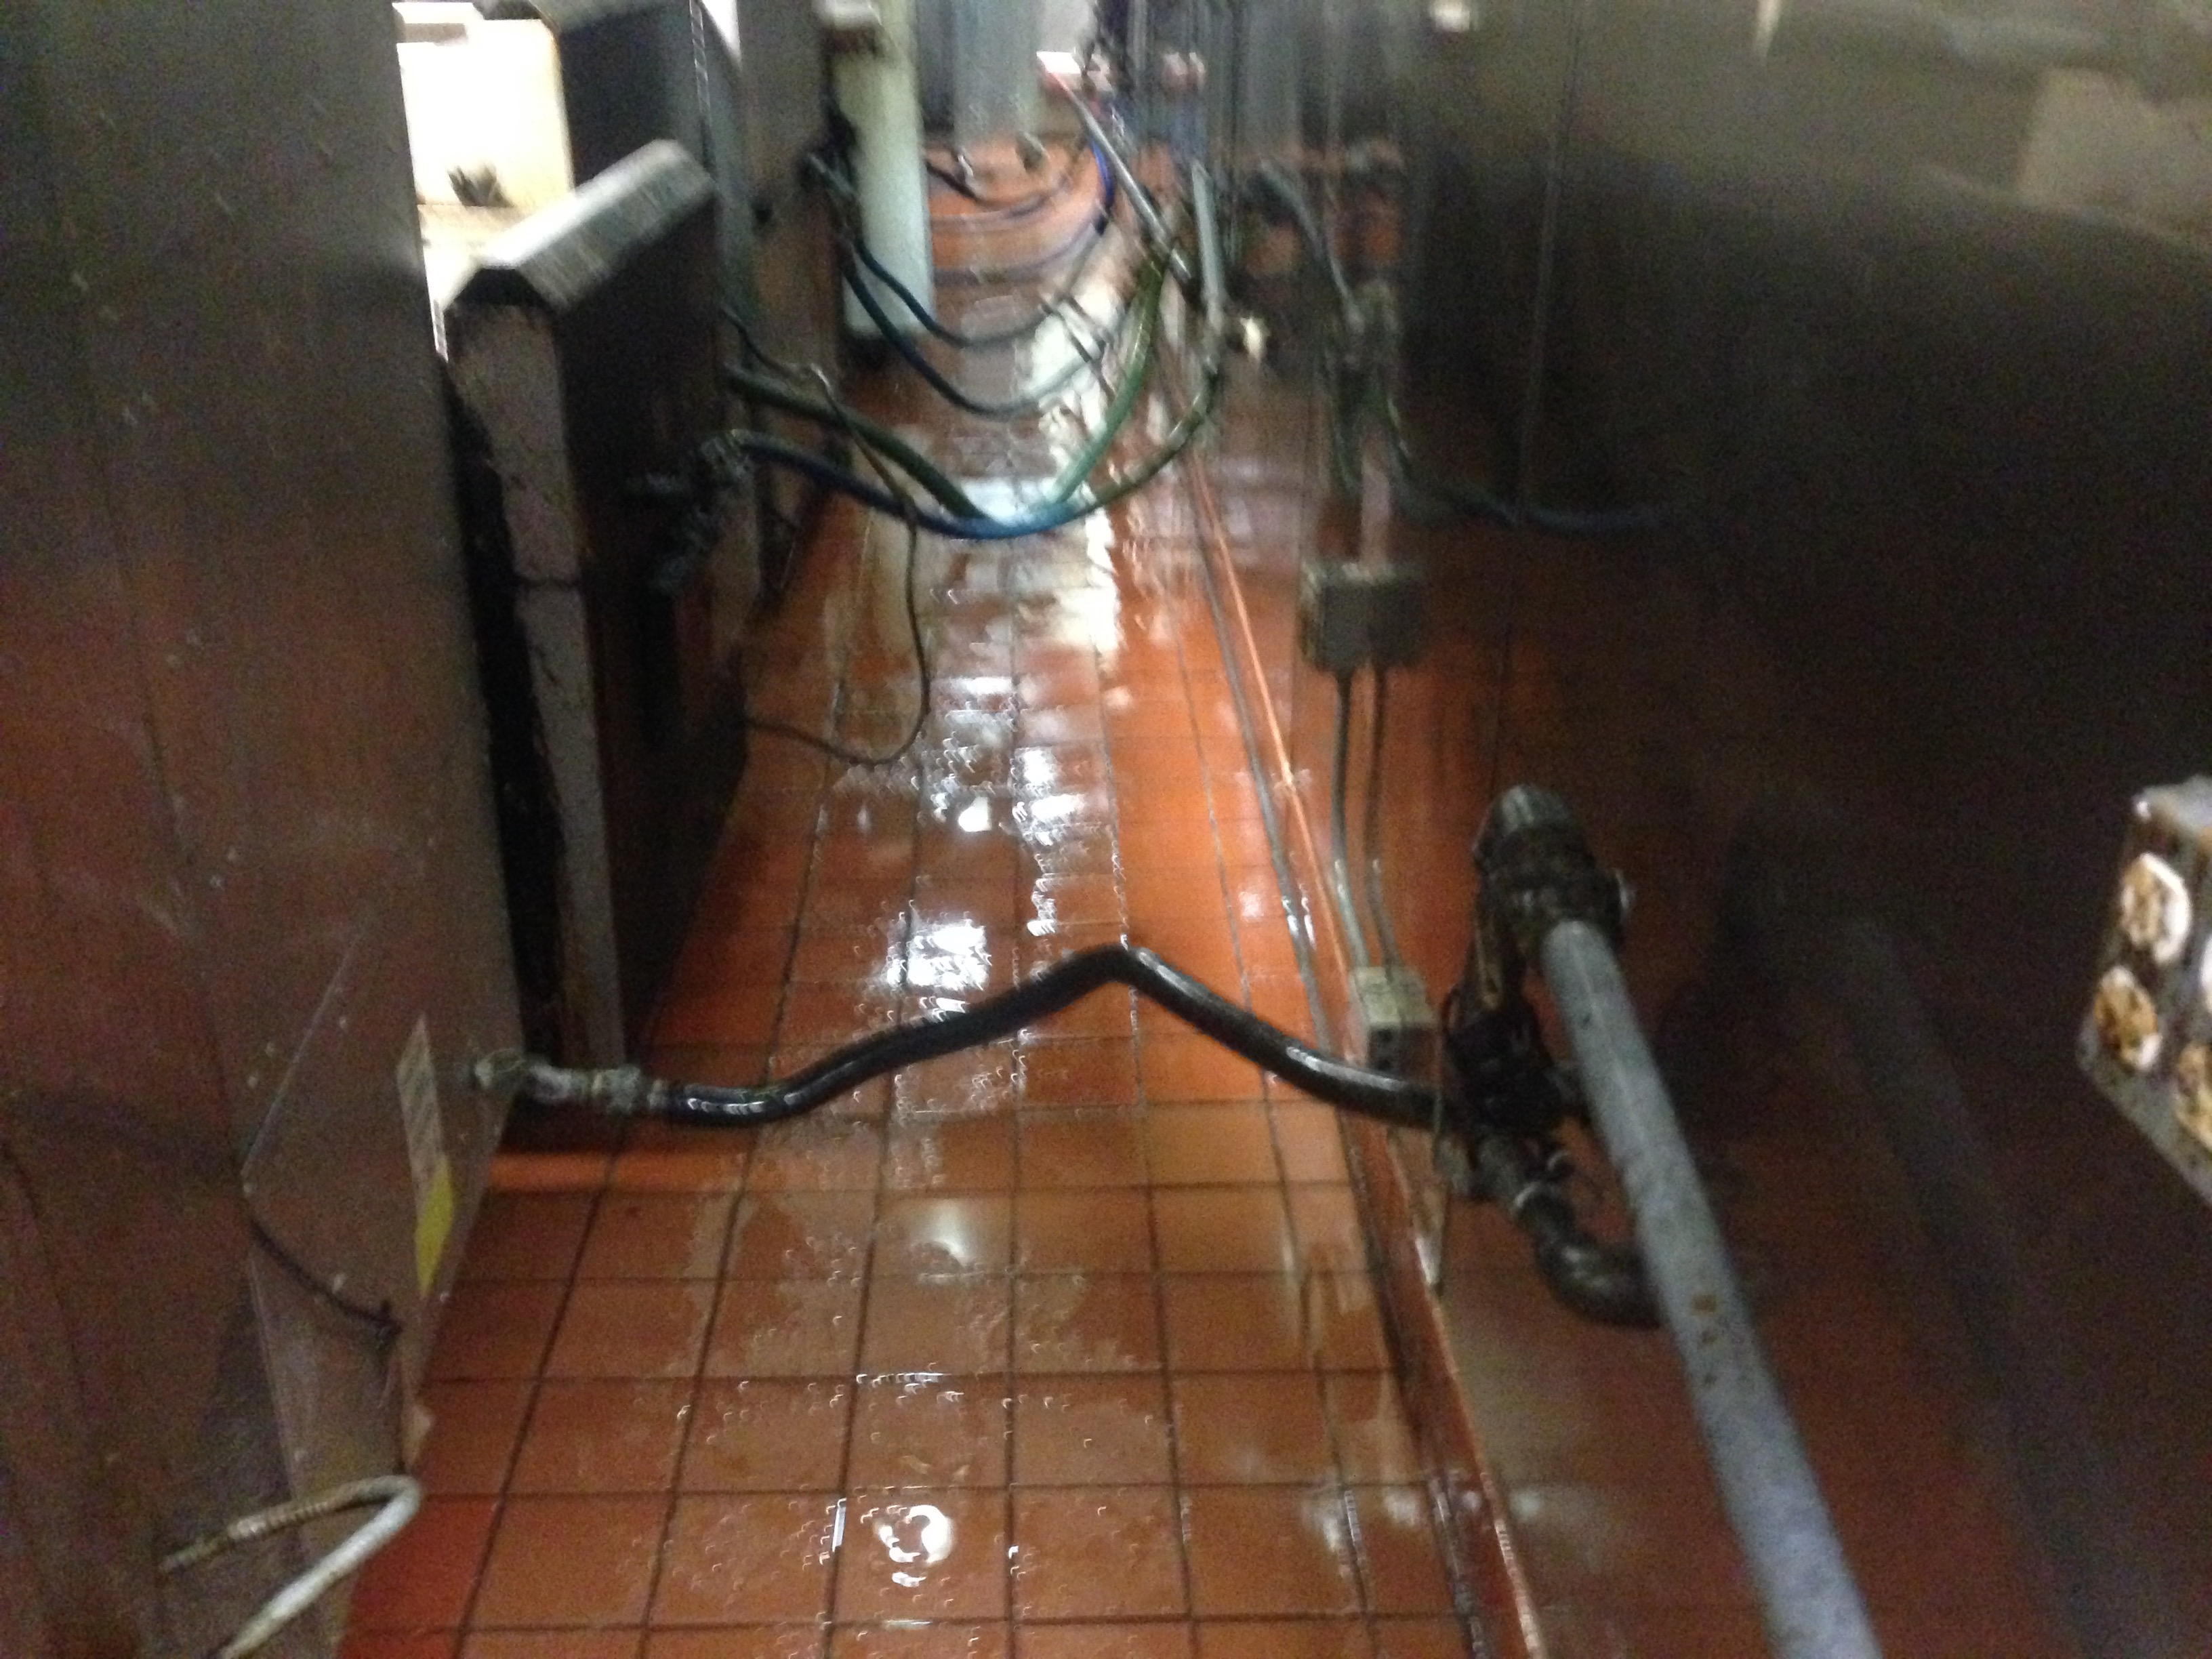 chicago restaurant cleaning - restaurant cleaning chicago